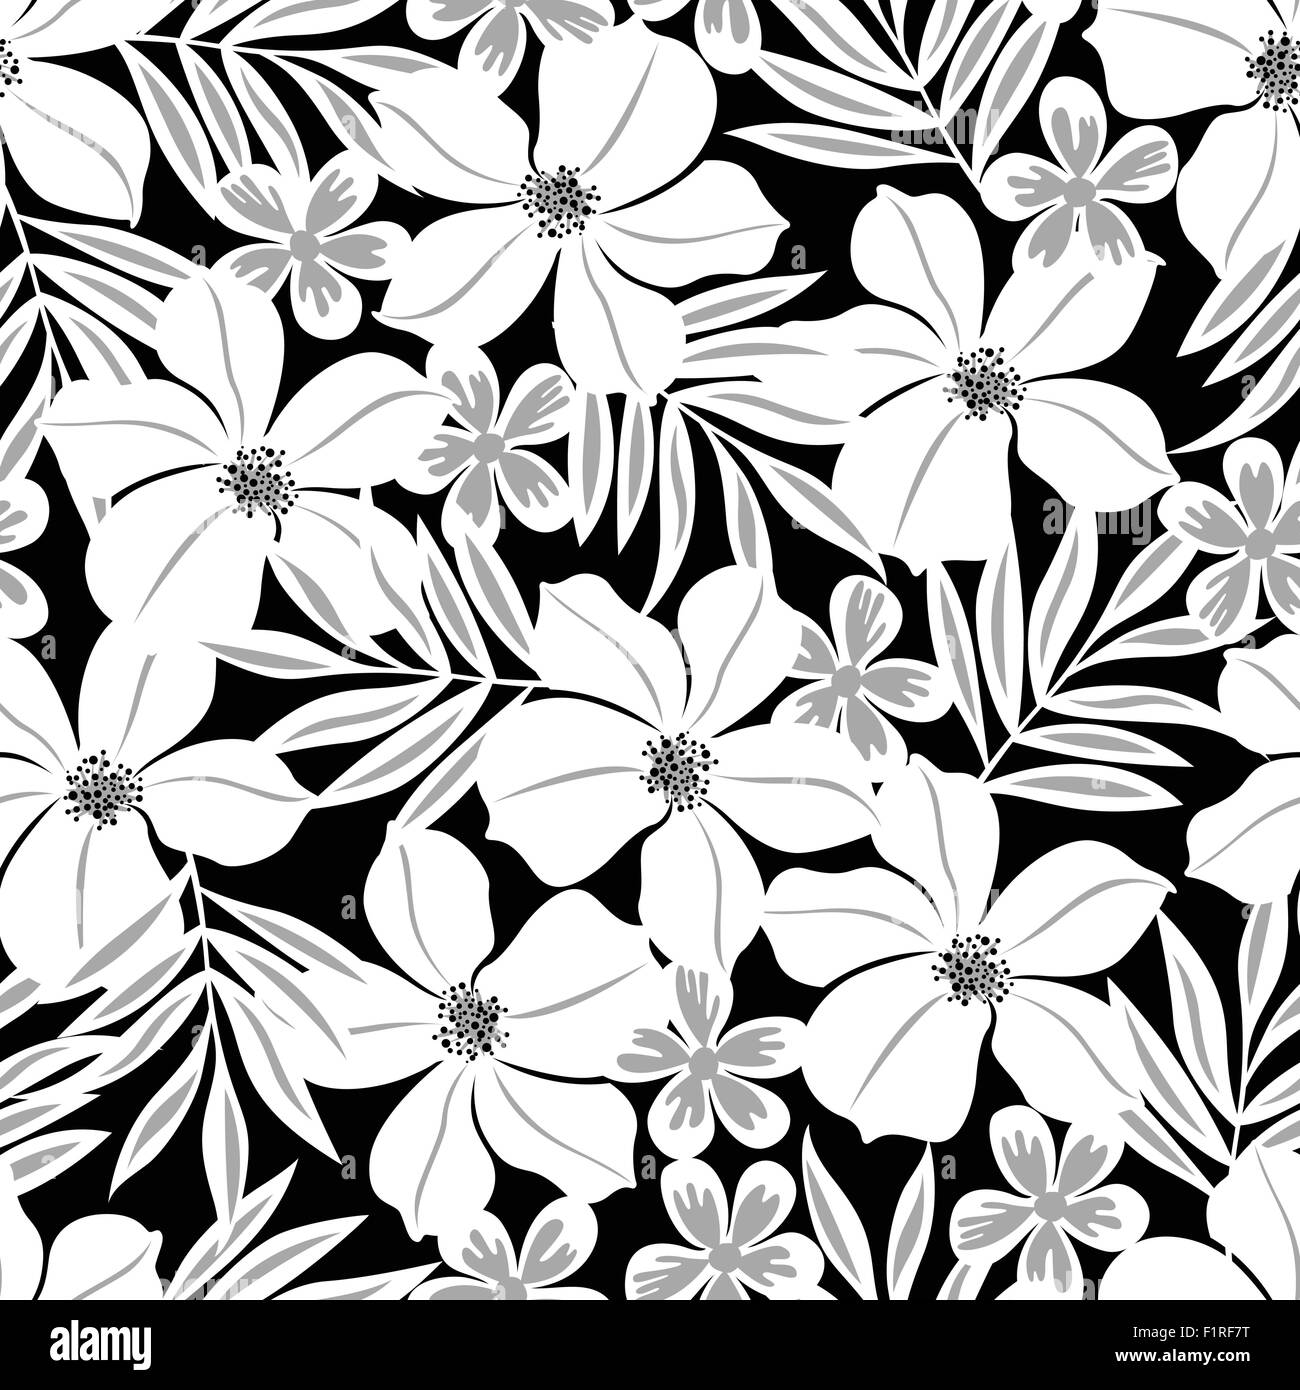 White tropical flower on a black background seamless